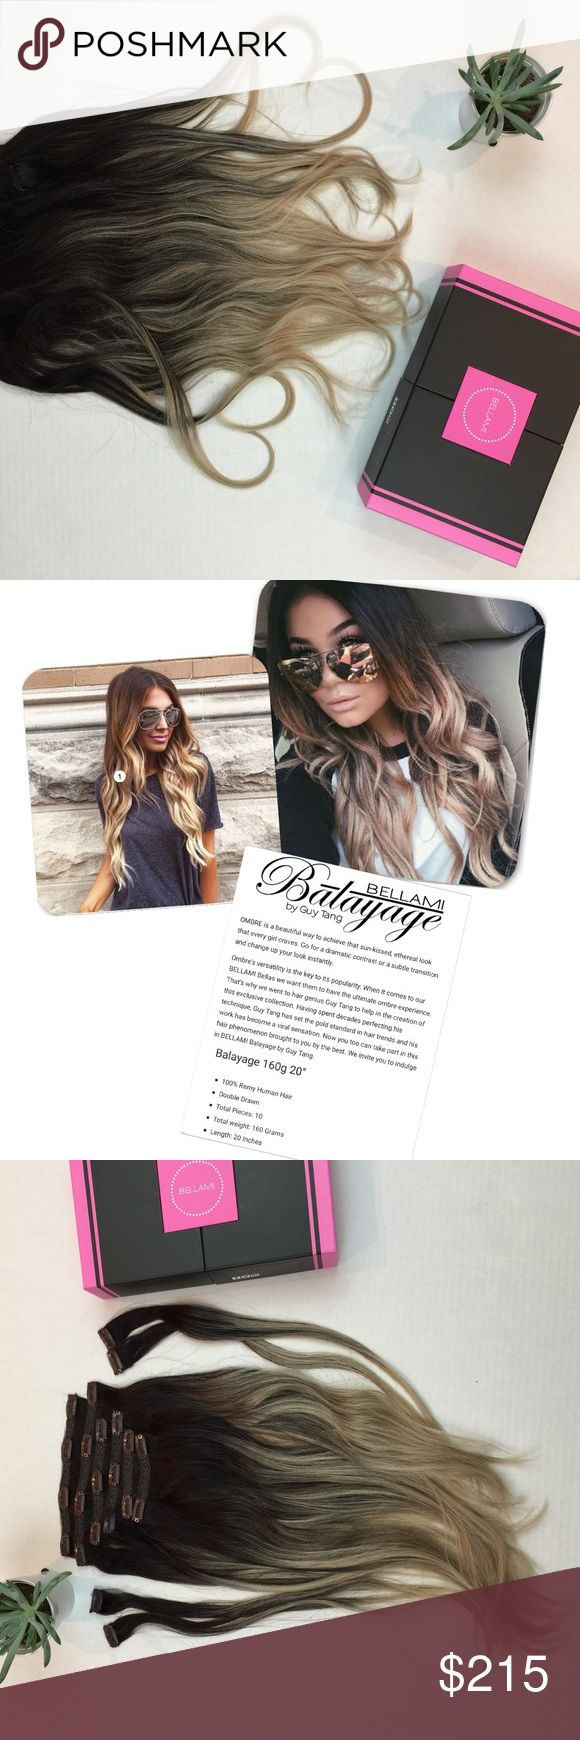 NEW ll • Bellami Balayage Hair Extensions PRICE FIRM • Trades • New In Box • Color: #1C/18 • Style: Bellami Balayage by Guy Tang • New in original package. Never Worn. • Total weight: 160 grams • Total Pieces: 10 • Length: 20 inches • 100% Remi Human Hair • Bag and Storage Box included • Balayage Range Contains: 1 x 8 inch wefts • 1 x 7 inch wefts • 2 x 6 inch wefts • 2 x 4 inch wefts • 4 x 1.5 inch wefts • THIS HAIR EXTENSIONS HAVE NOT BEEN ALTERED- NOT CUT OR DYED, NOT SEWED IN TOGETHER •…